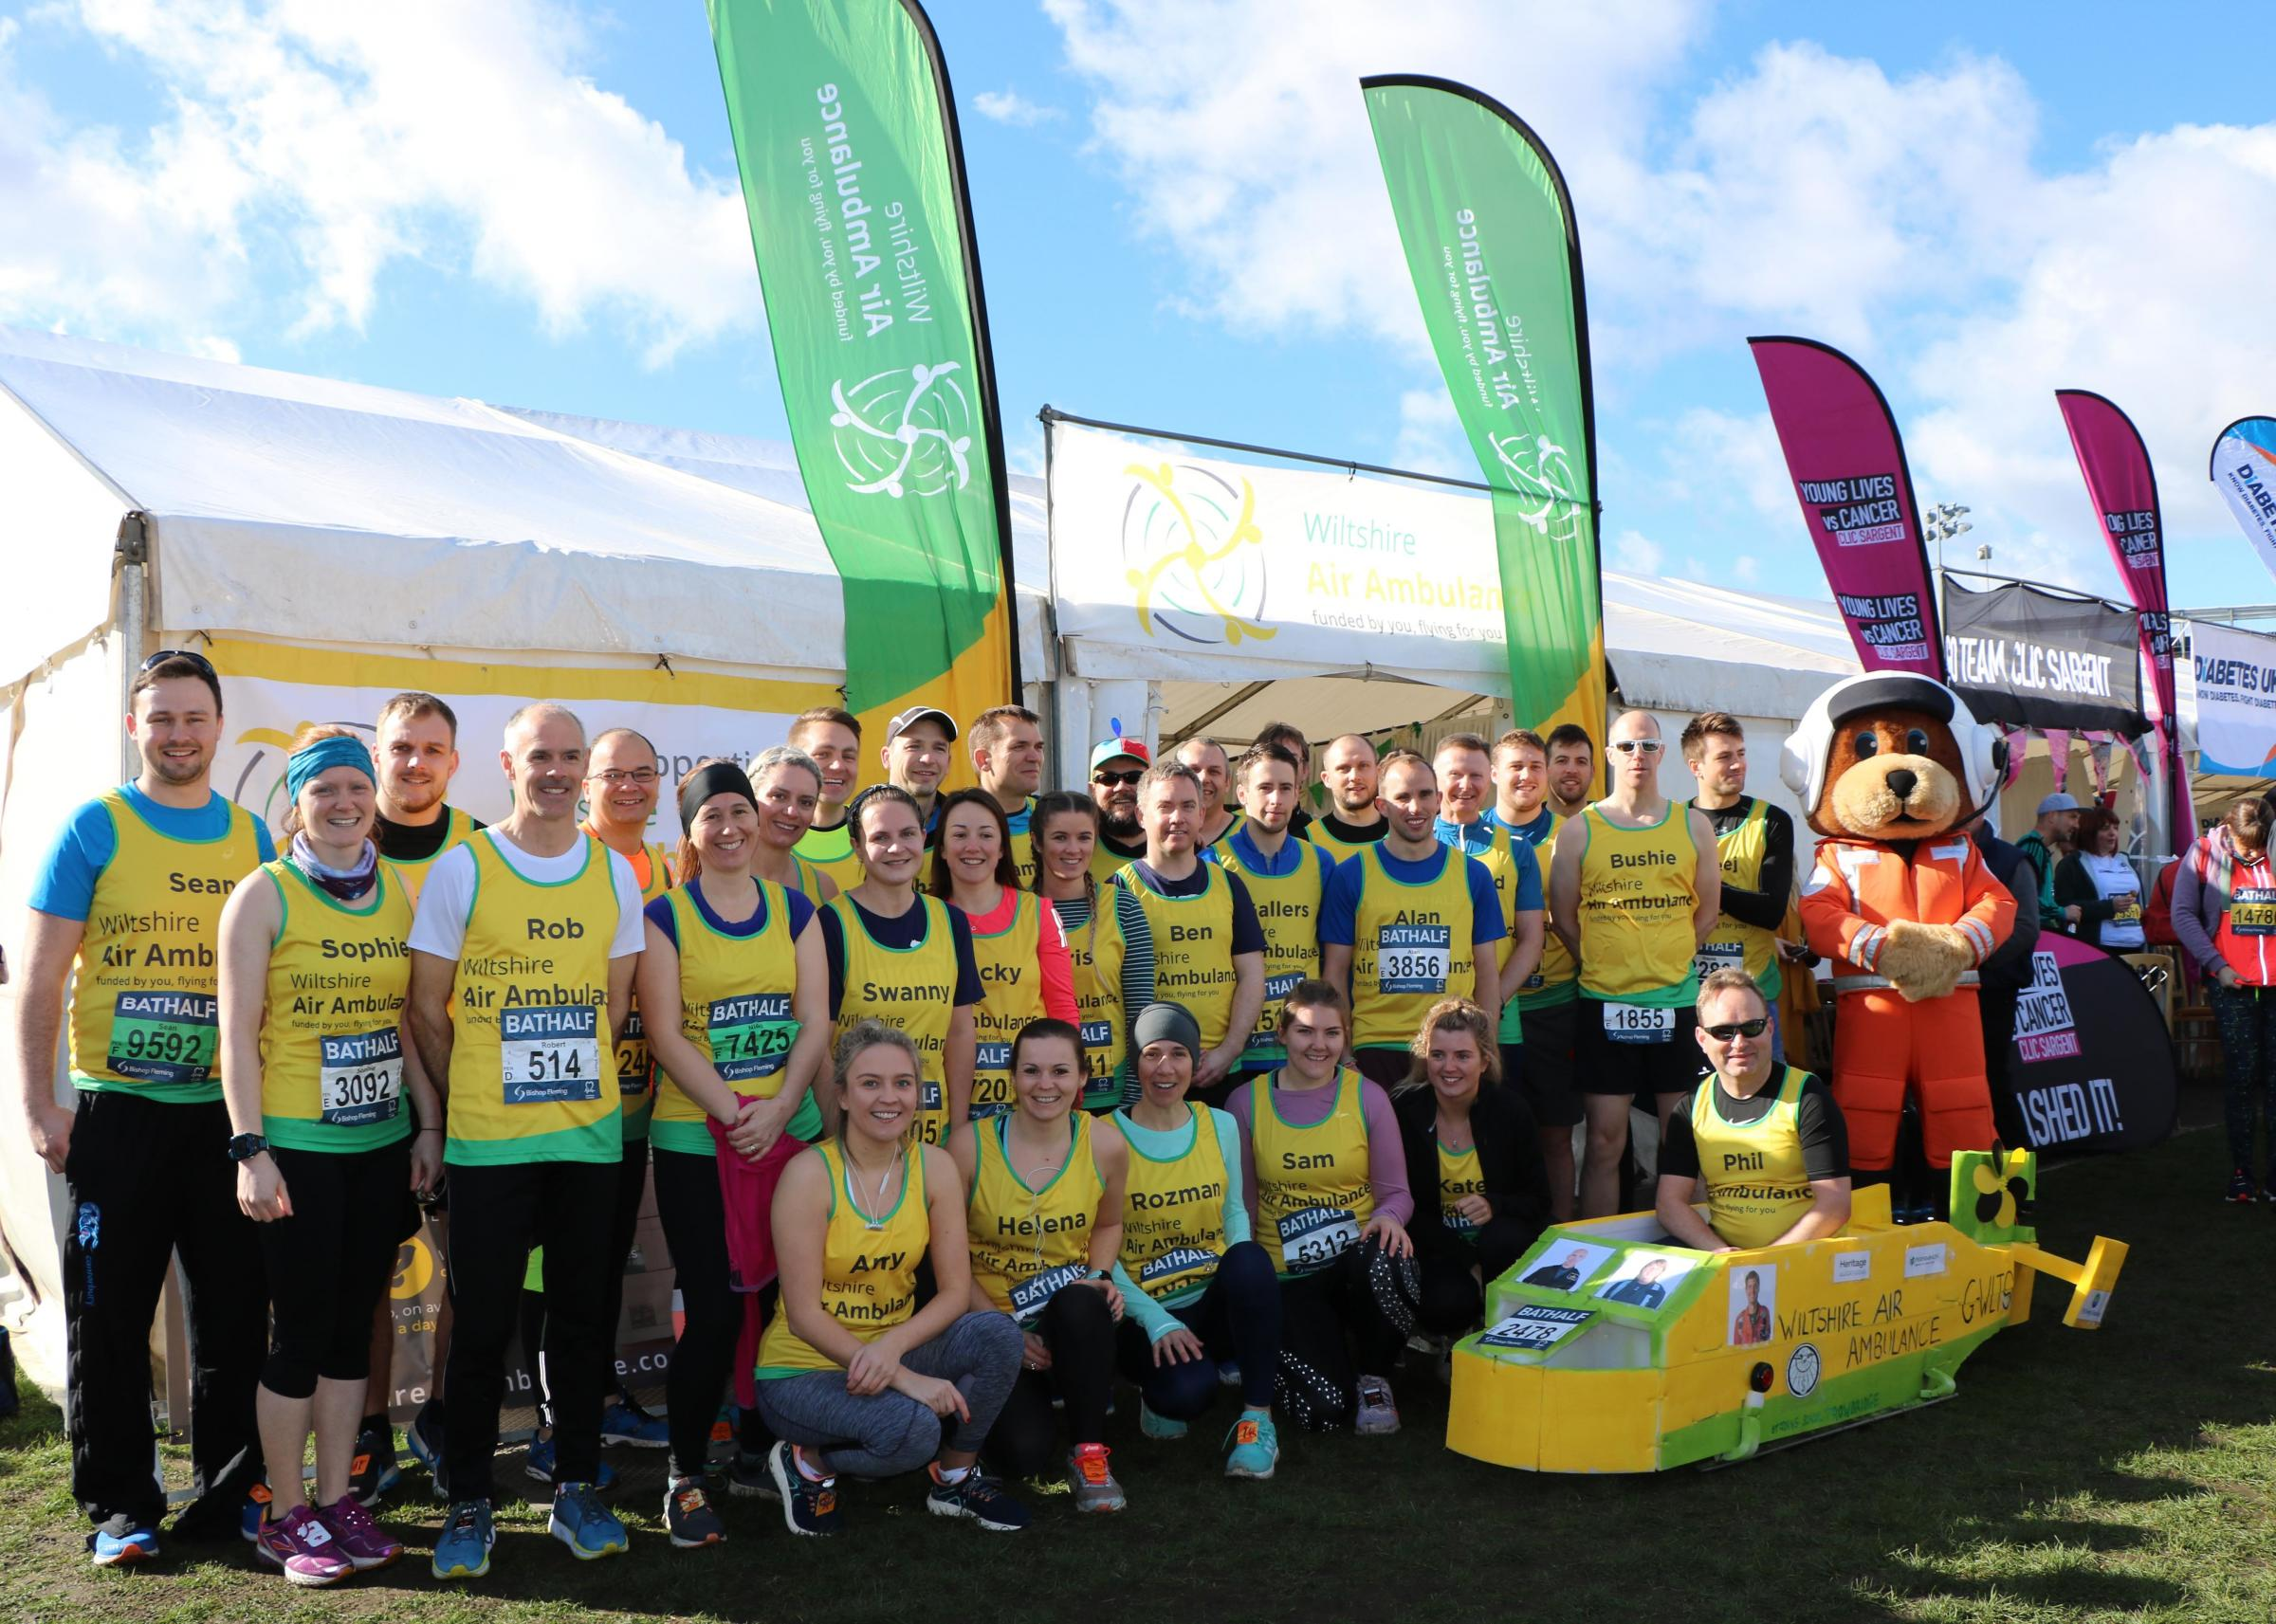 Wiltshire Air Ambulance is inviting runners to help celebrate its 30th anniversary on the same day as next year's Bath Half Marathon